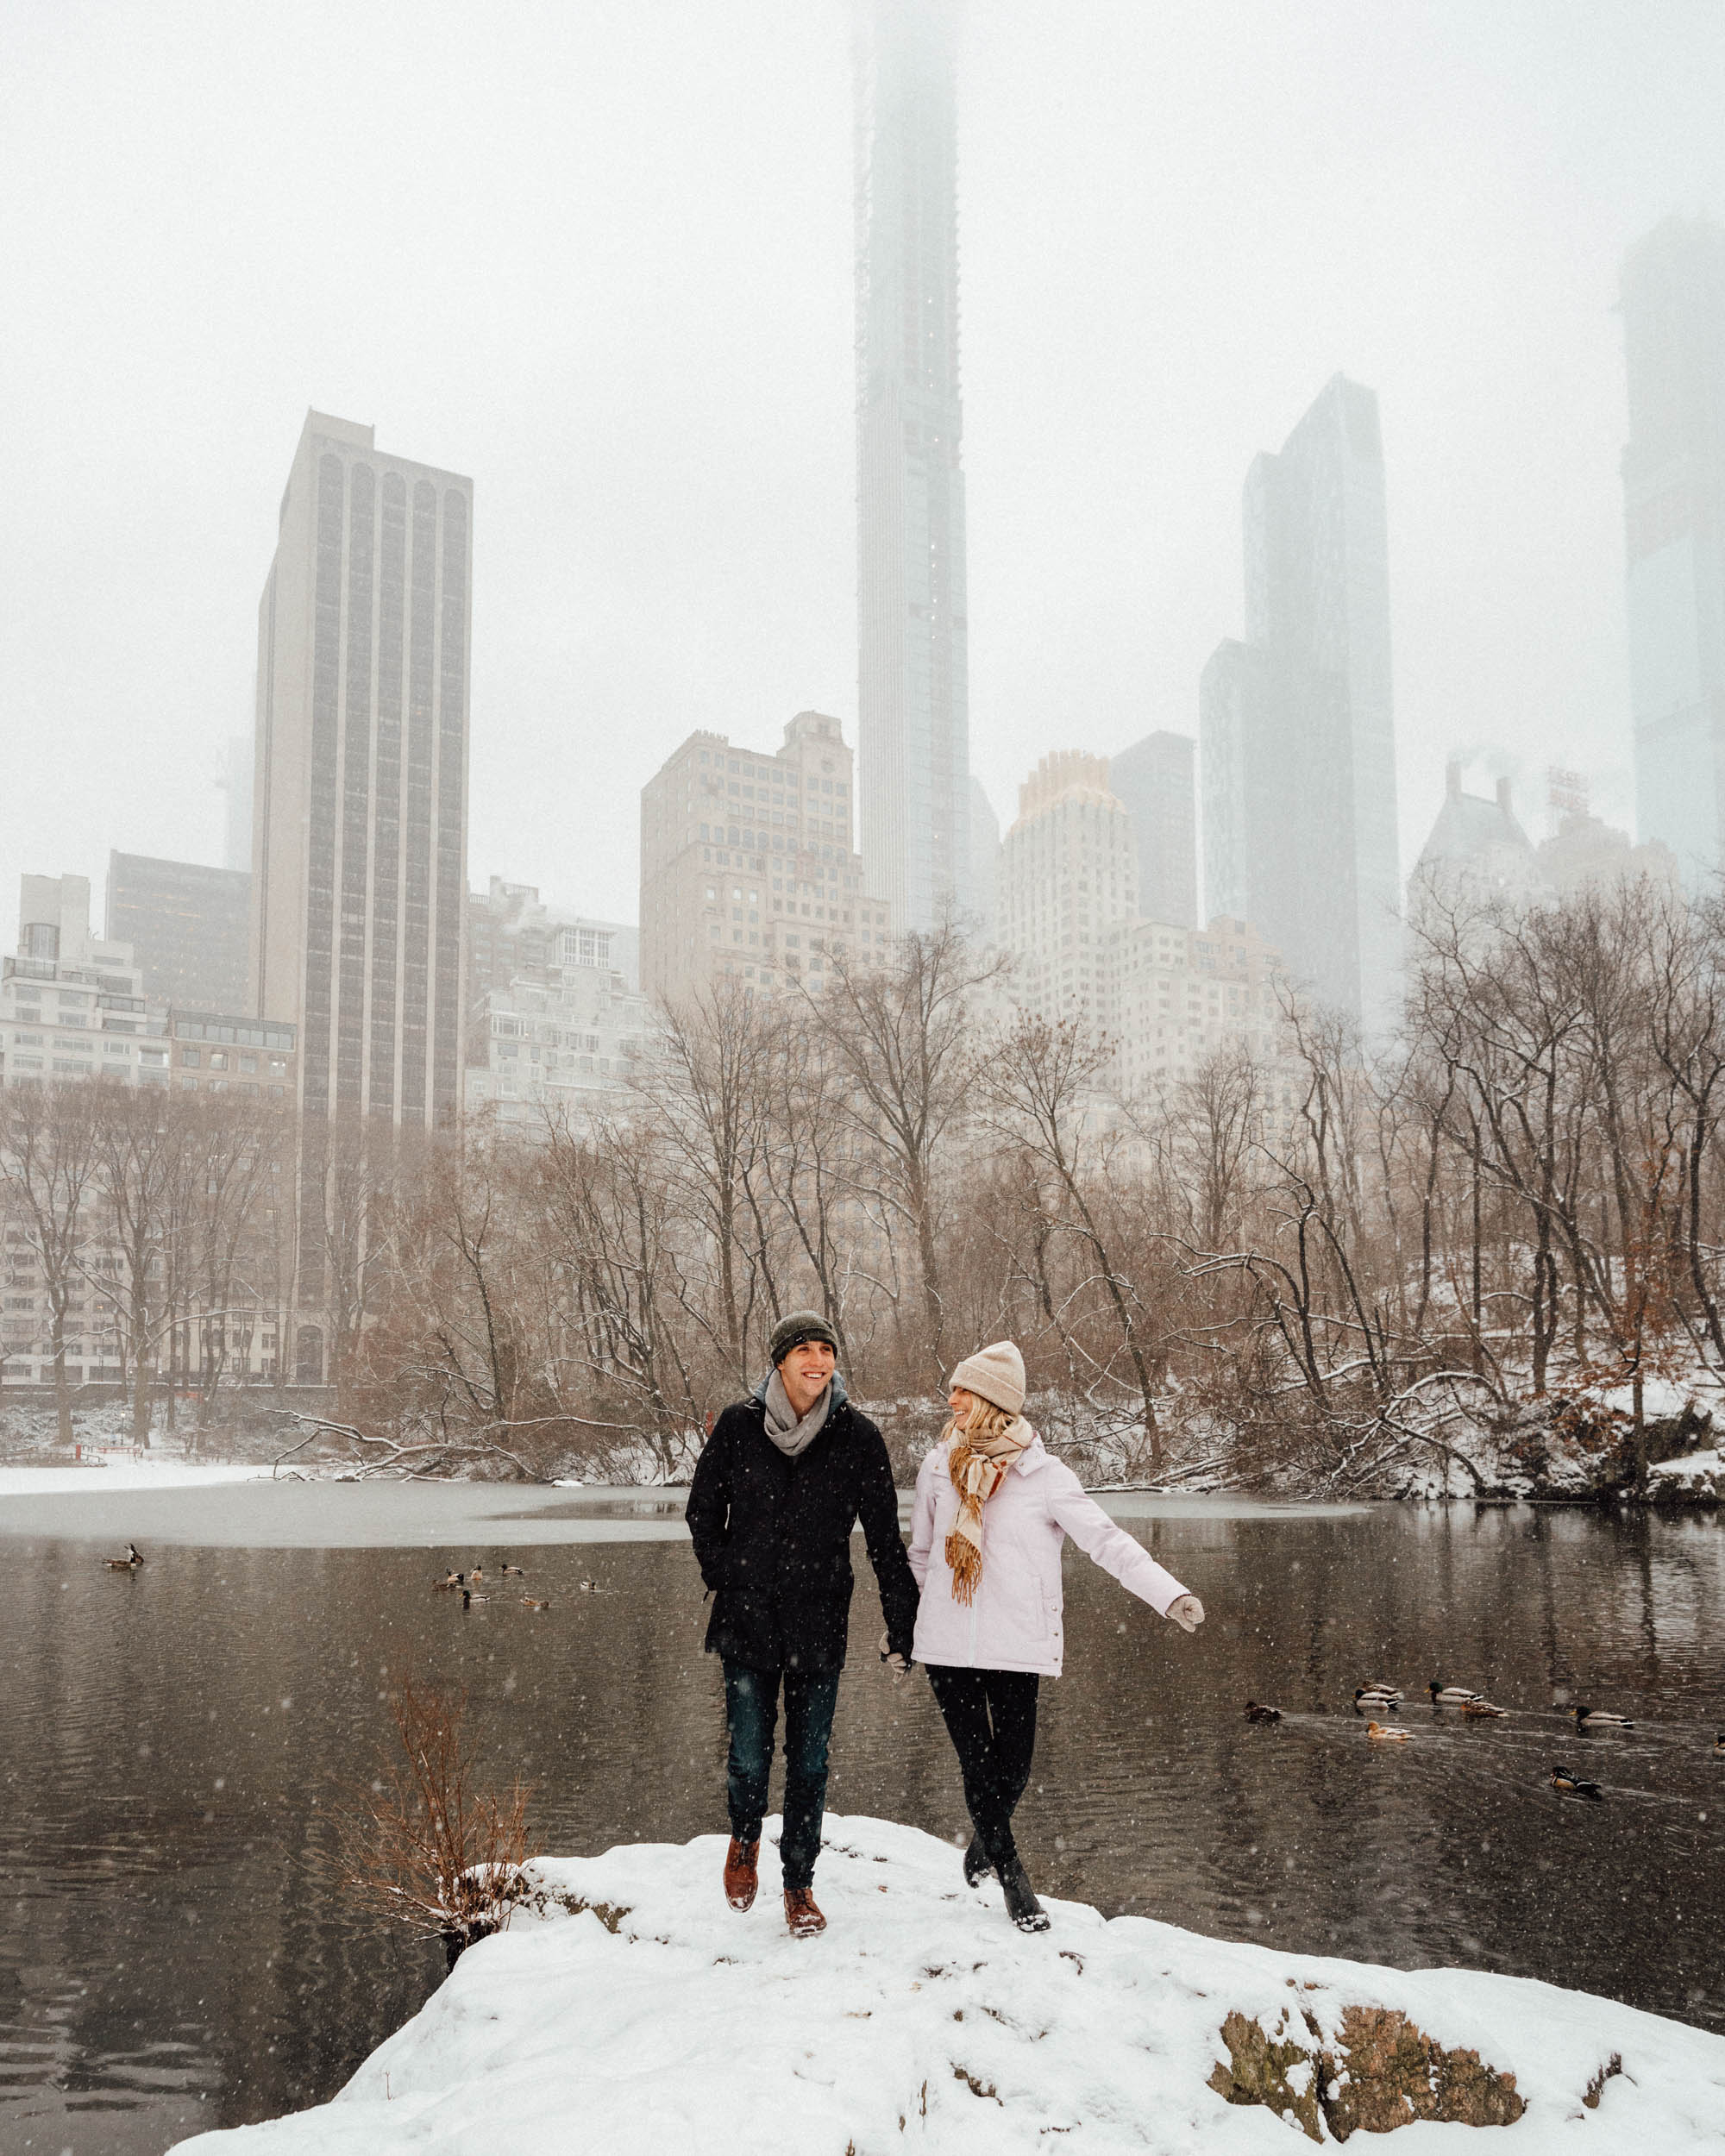 Central Park Snow Day New York City via @finduslost